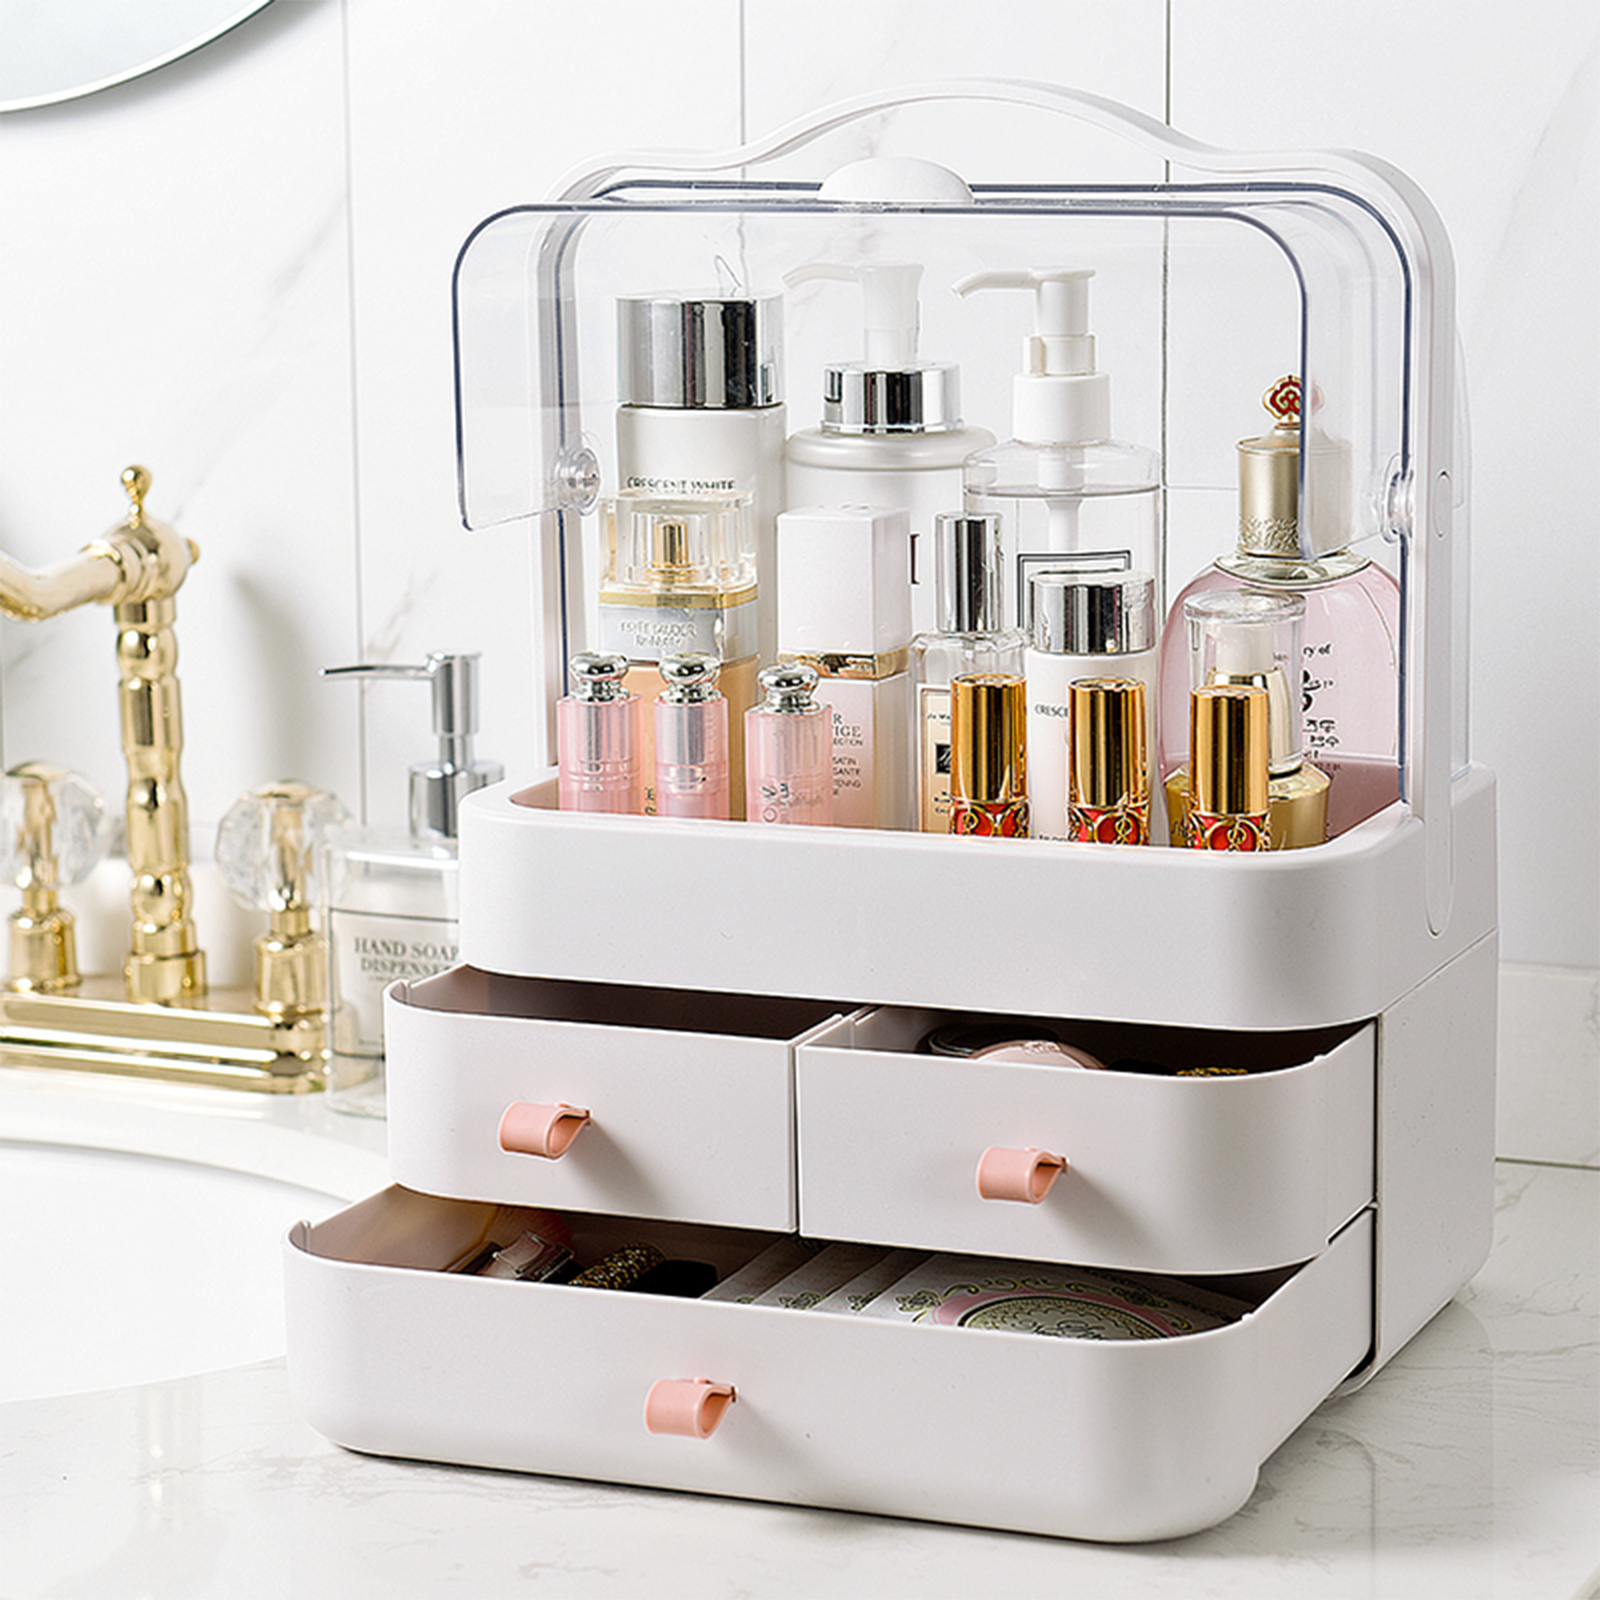 Best Portable Makeup Organizer For Storing All Your Makeup and Beauty Essentials